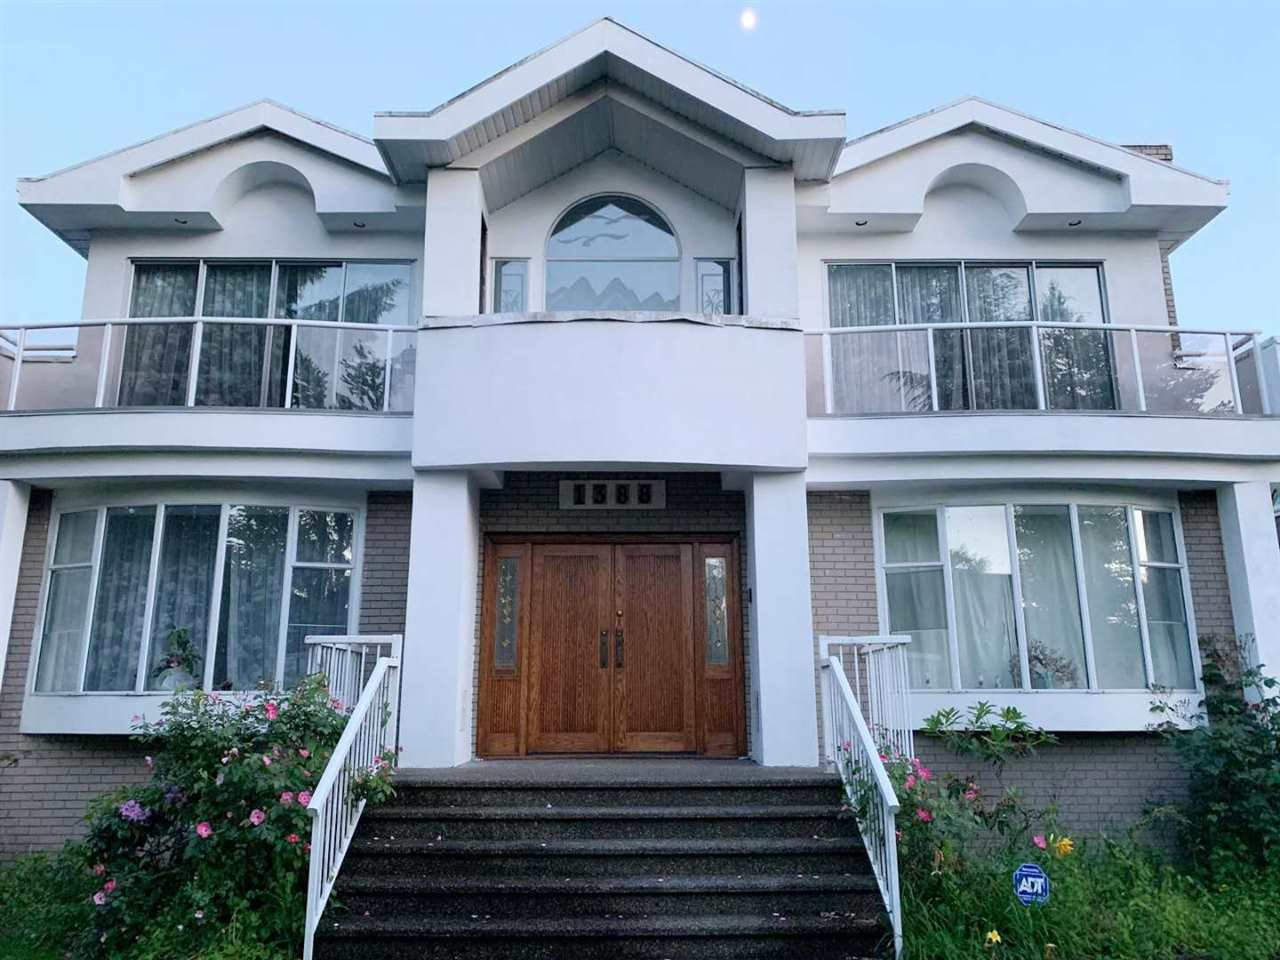 Main Photo: 1388 49TH AVENUE in Vancouver: South Granville House for sale (Vancouver West)  : MLS®# R2379376